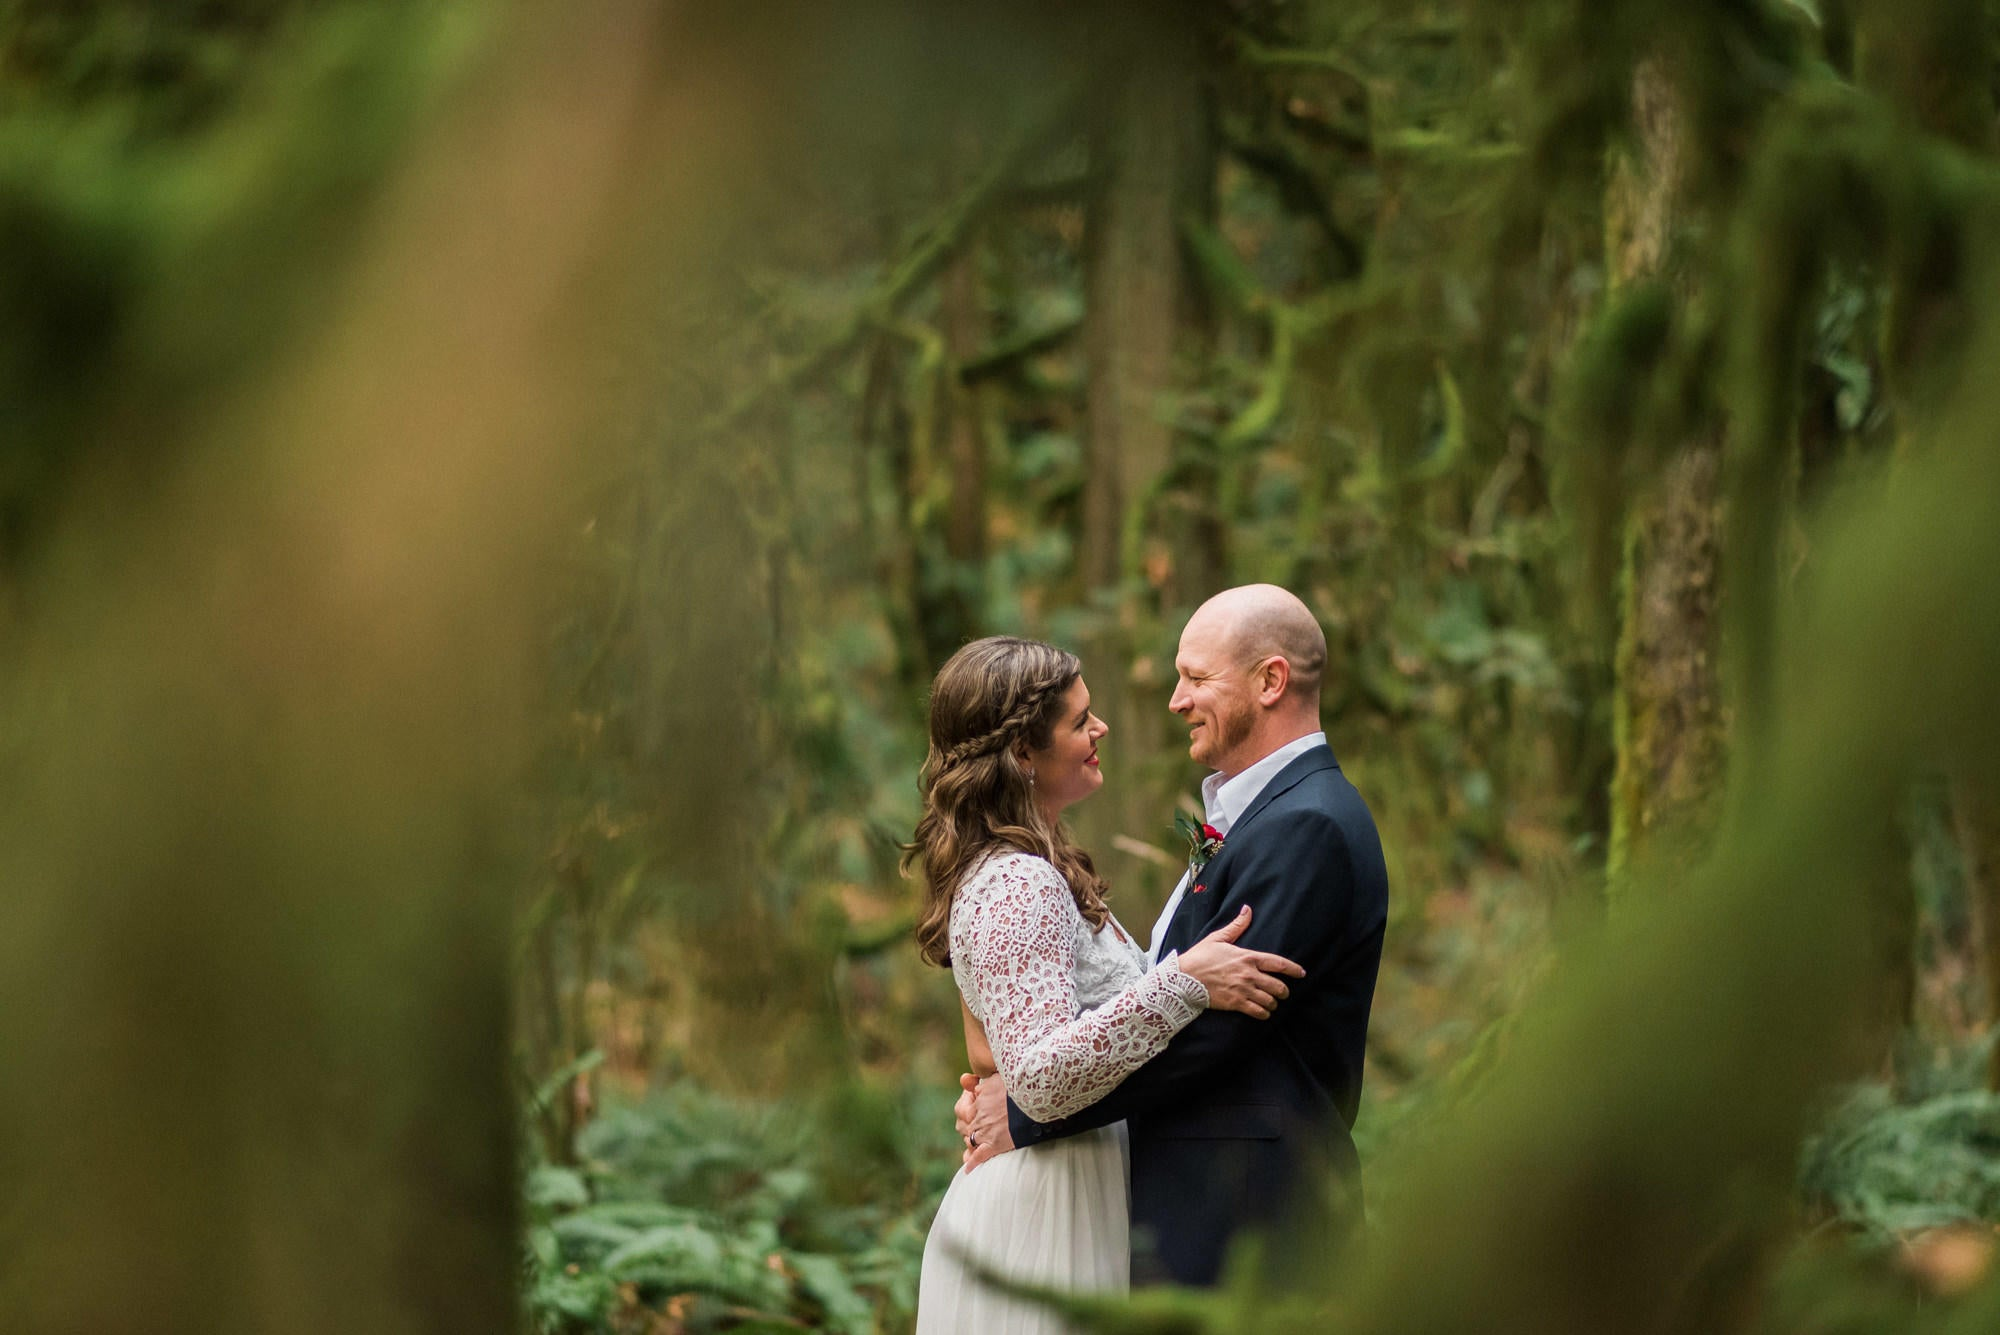 bride and groom looking at each other in a dense green forest